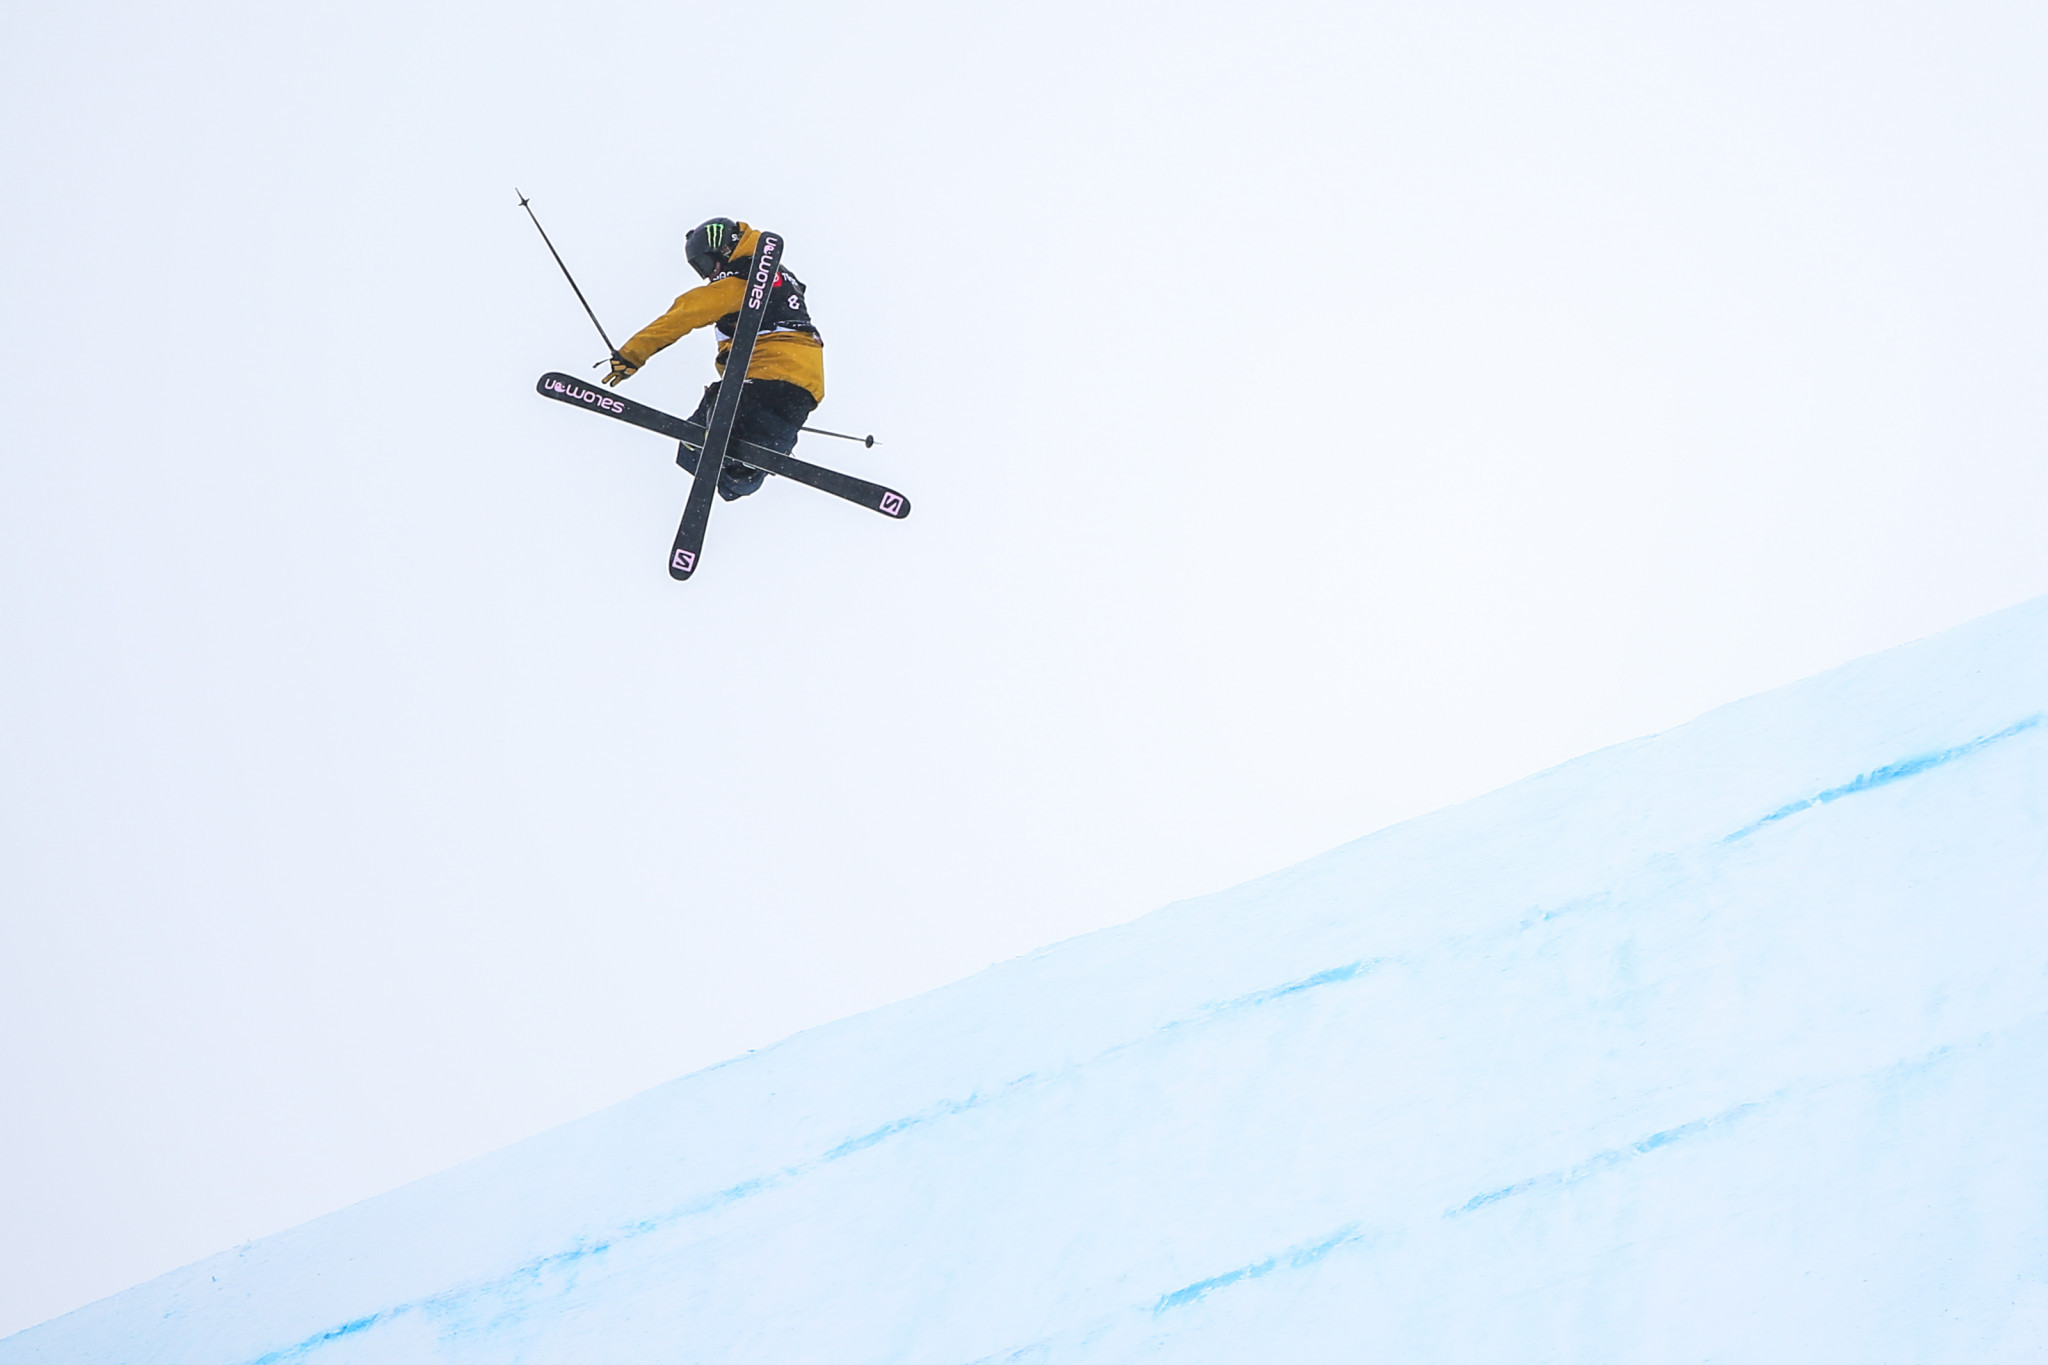 The ski squad is spearheaded by slopestyle world champion James Woods ©Getty Images